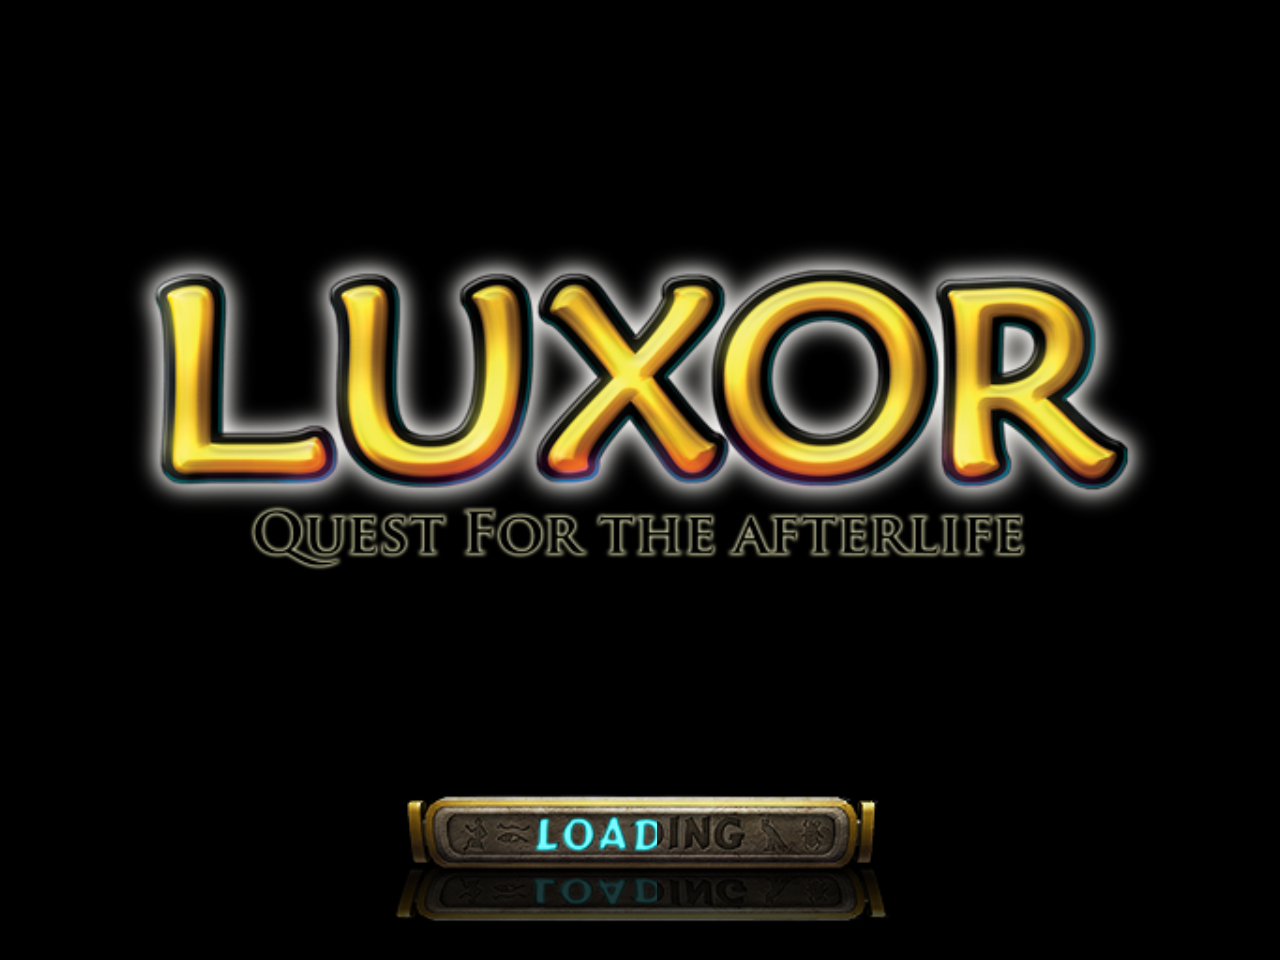 Luxor: Quest for the Afterlife Windows Loading screen